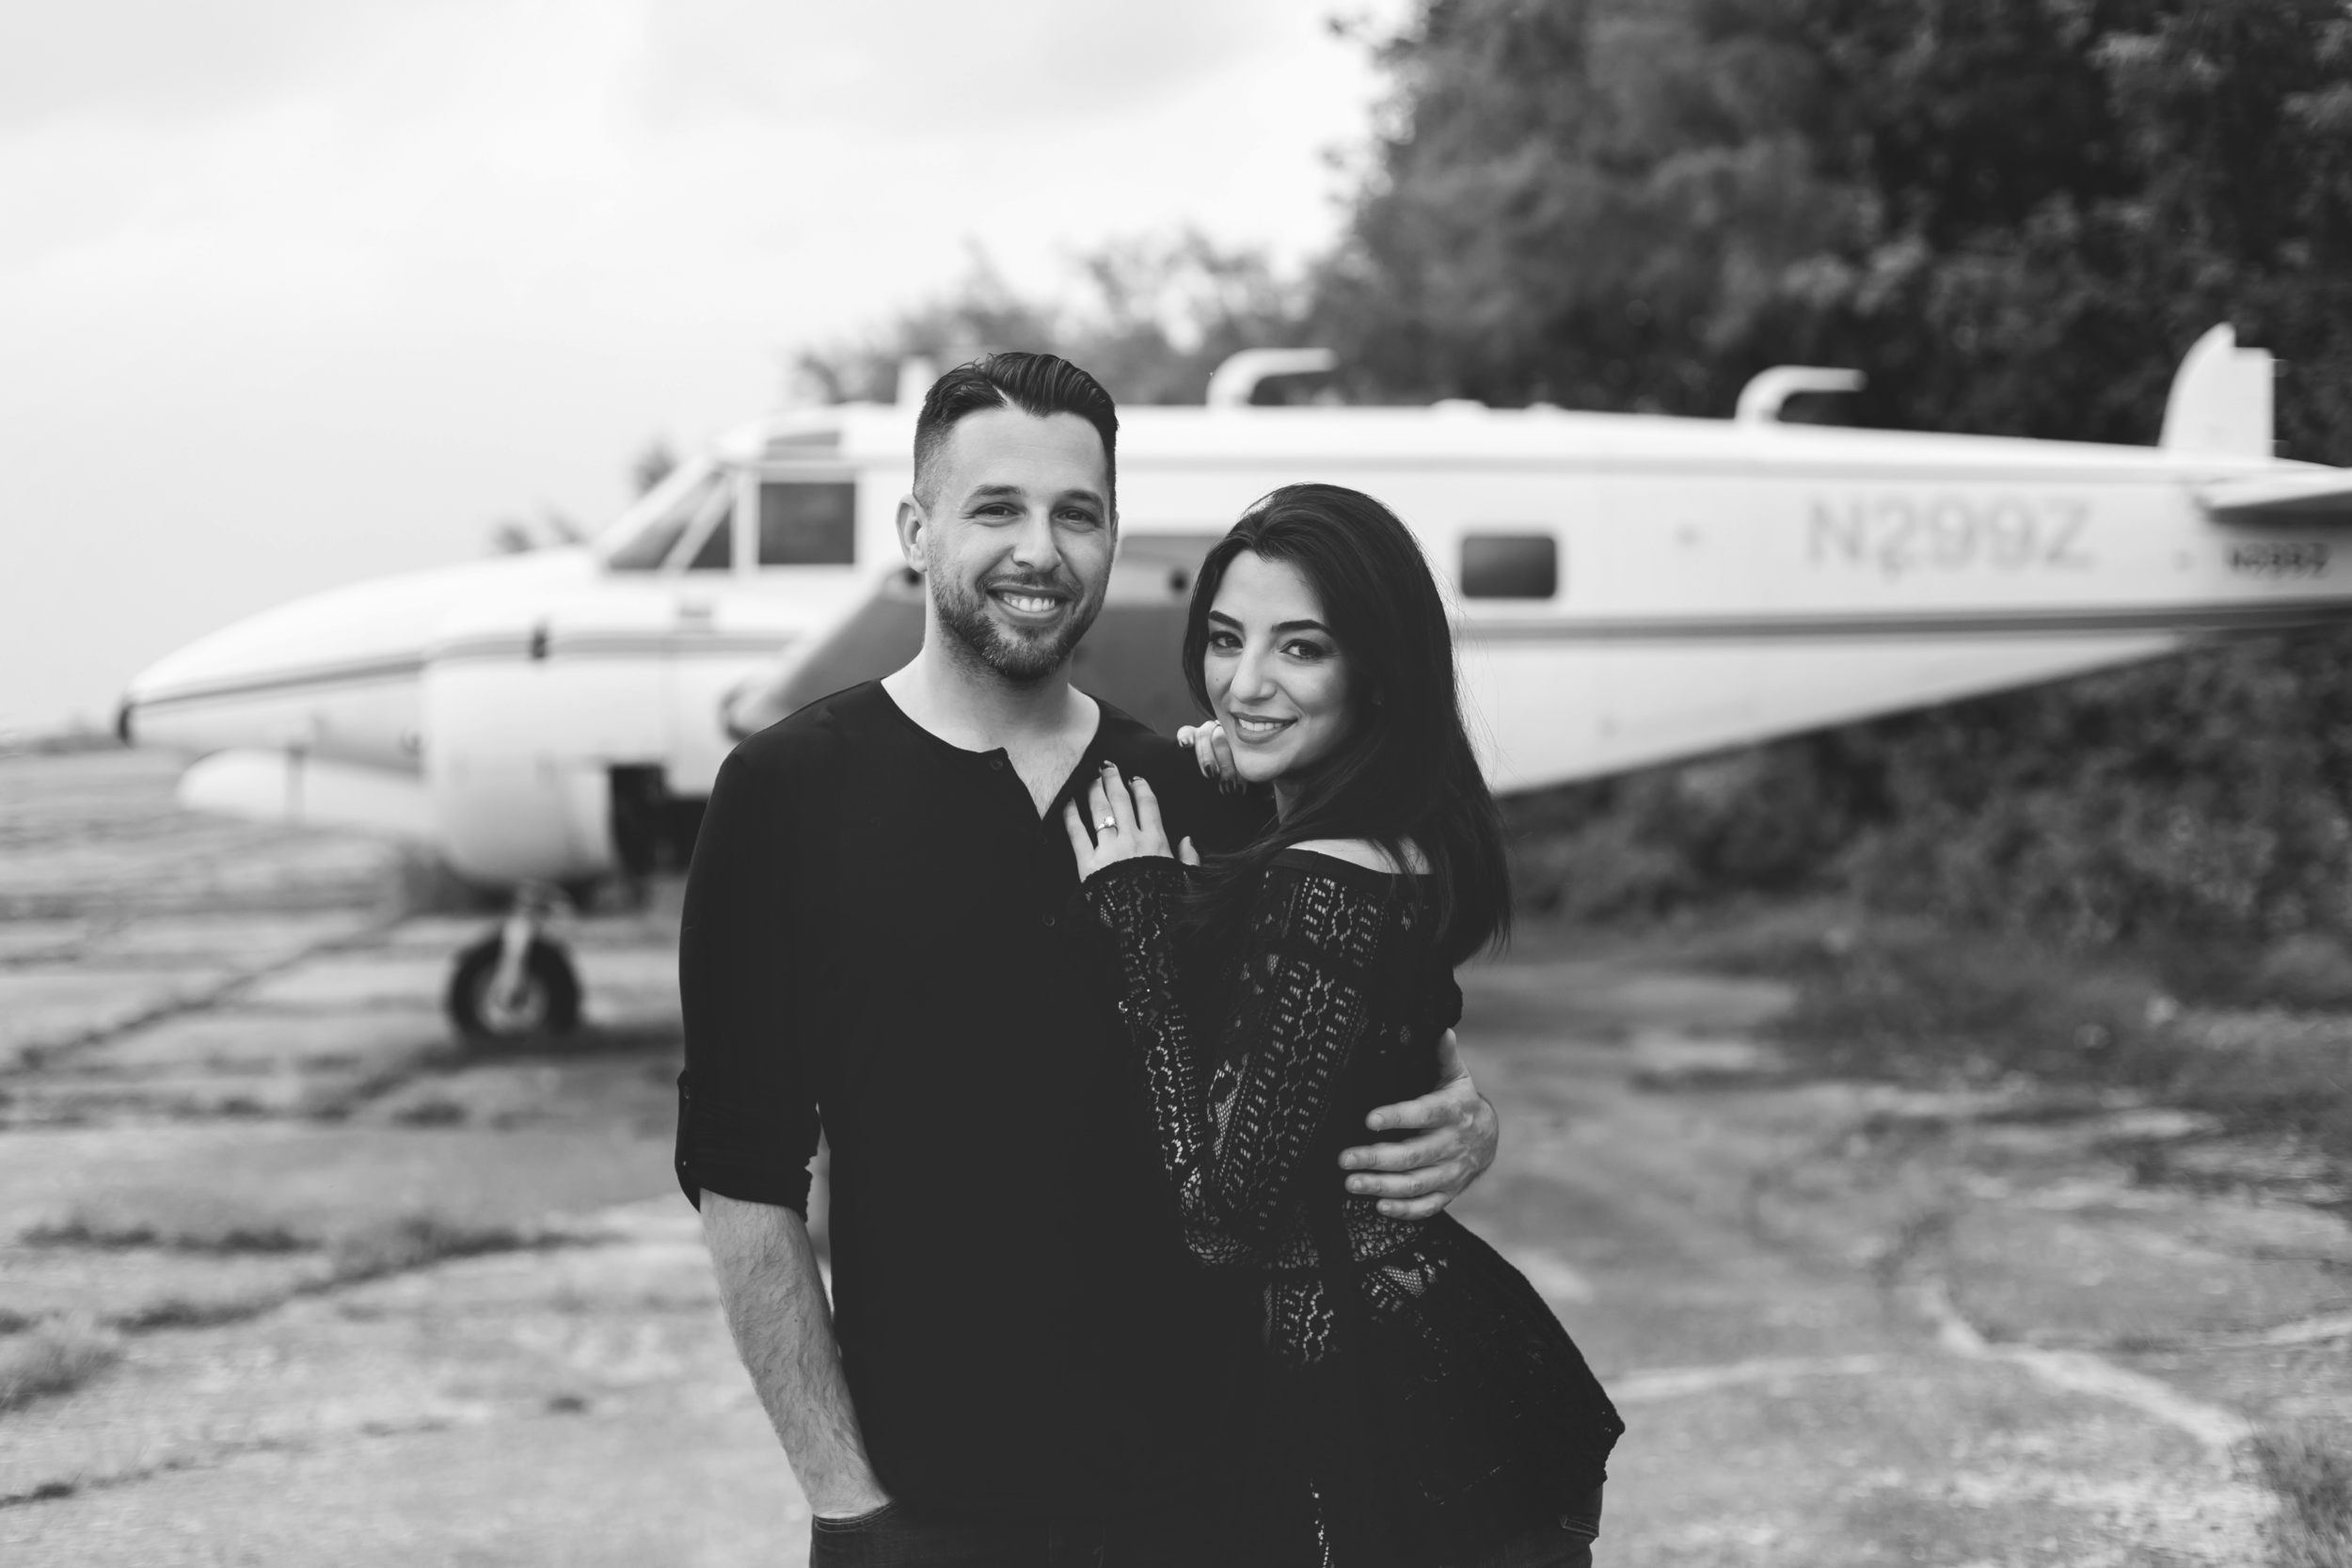 Engagement-Session-Hamilton-Burlington-Oakville-Toronto-Niagara-Wedding-Photographer-Engaged-Photography-Brantford-Airport-HamOnt-Engaged-Moments-by-Lauren-Photo-Image-6.png